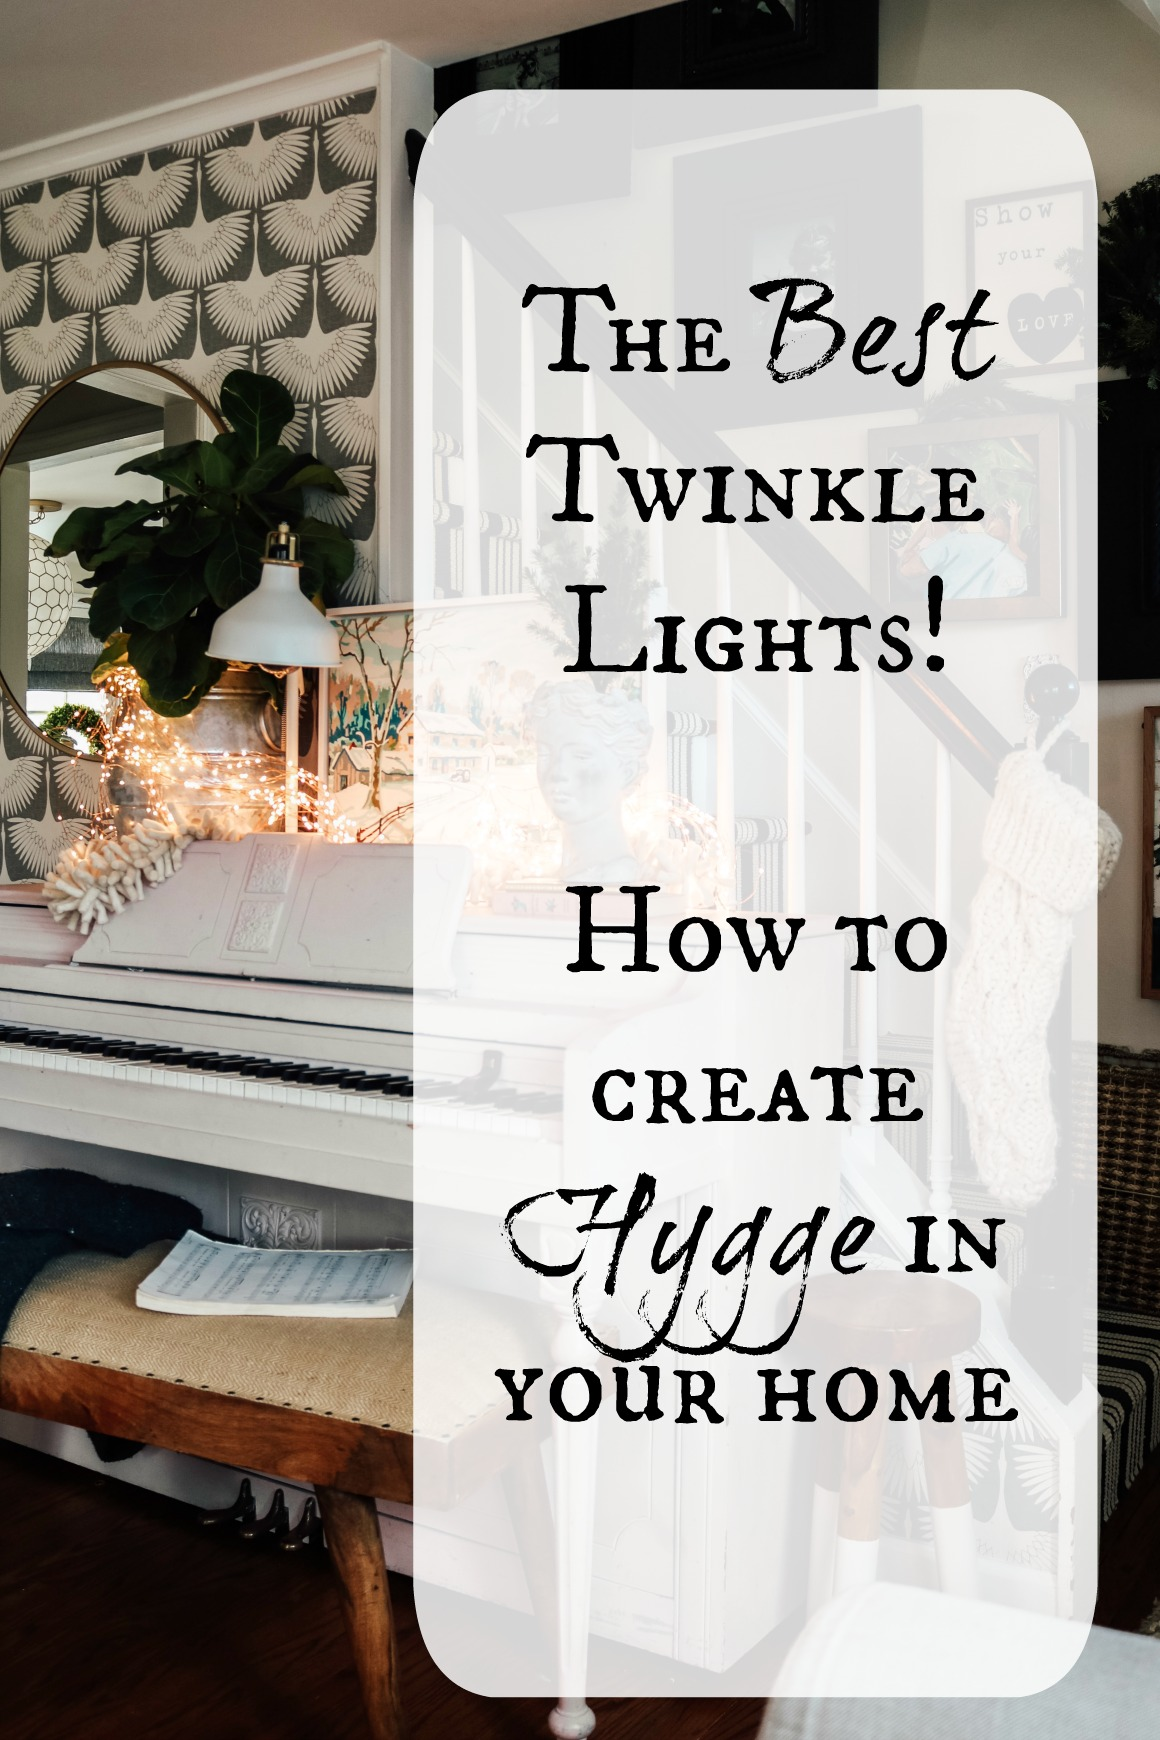 The Best Twinkle Lights- How to Create Hygge in your Home